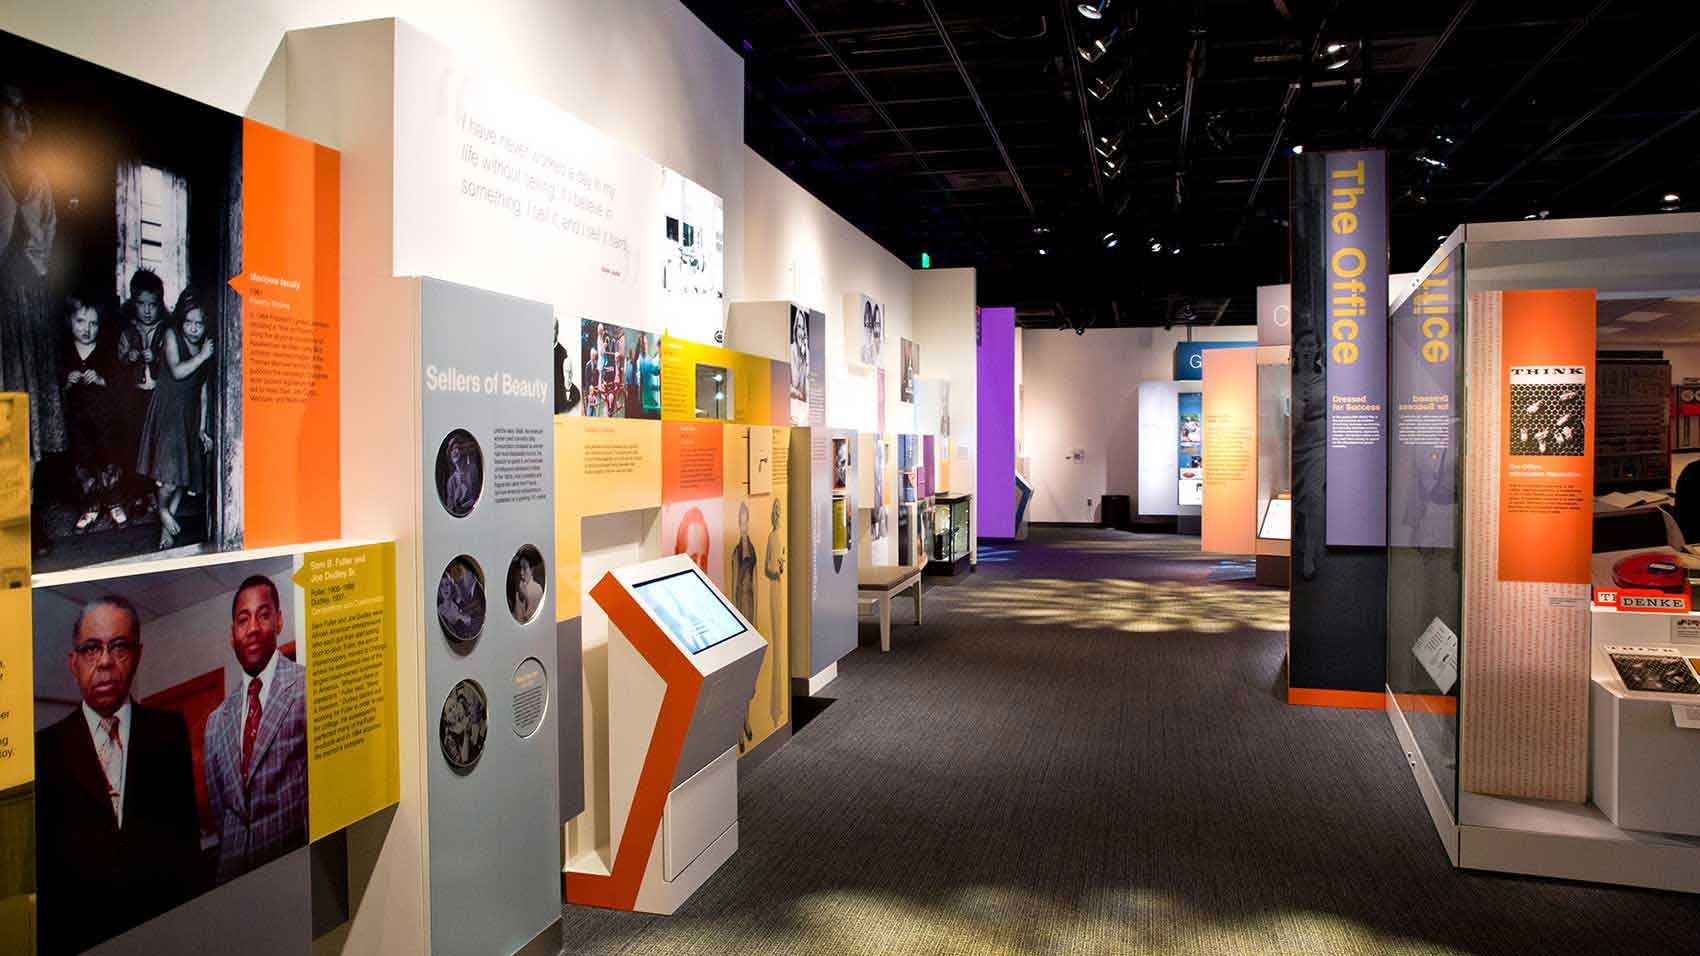 Smithsonian's National Museum of American History exhibit featuring SC Johnson